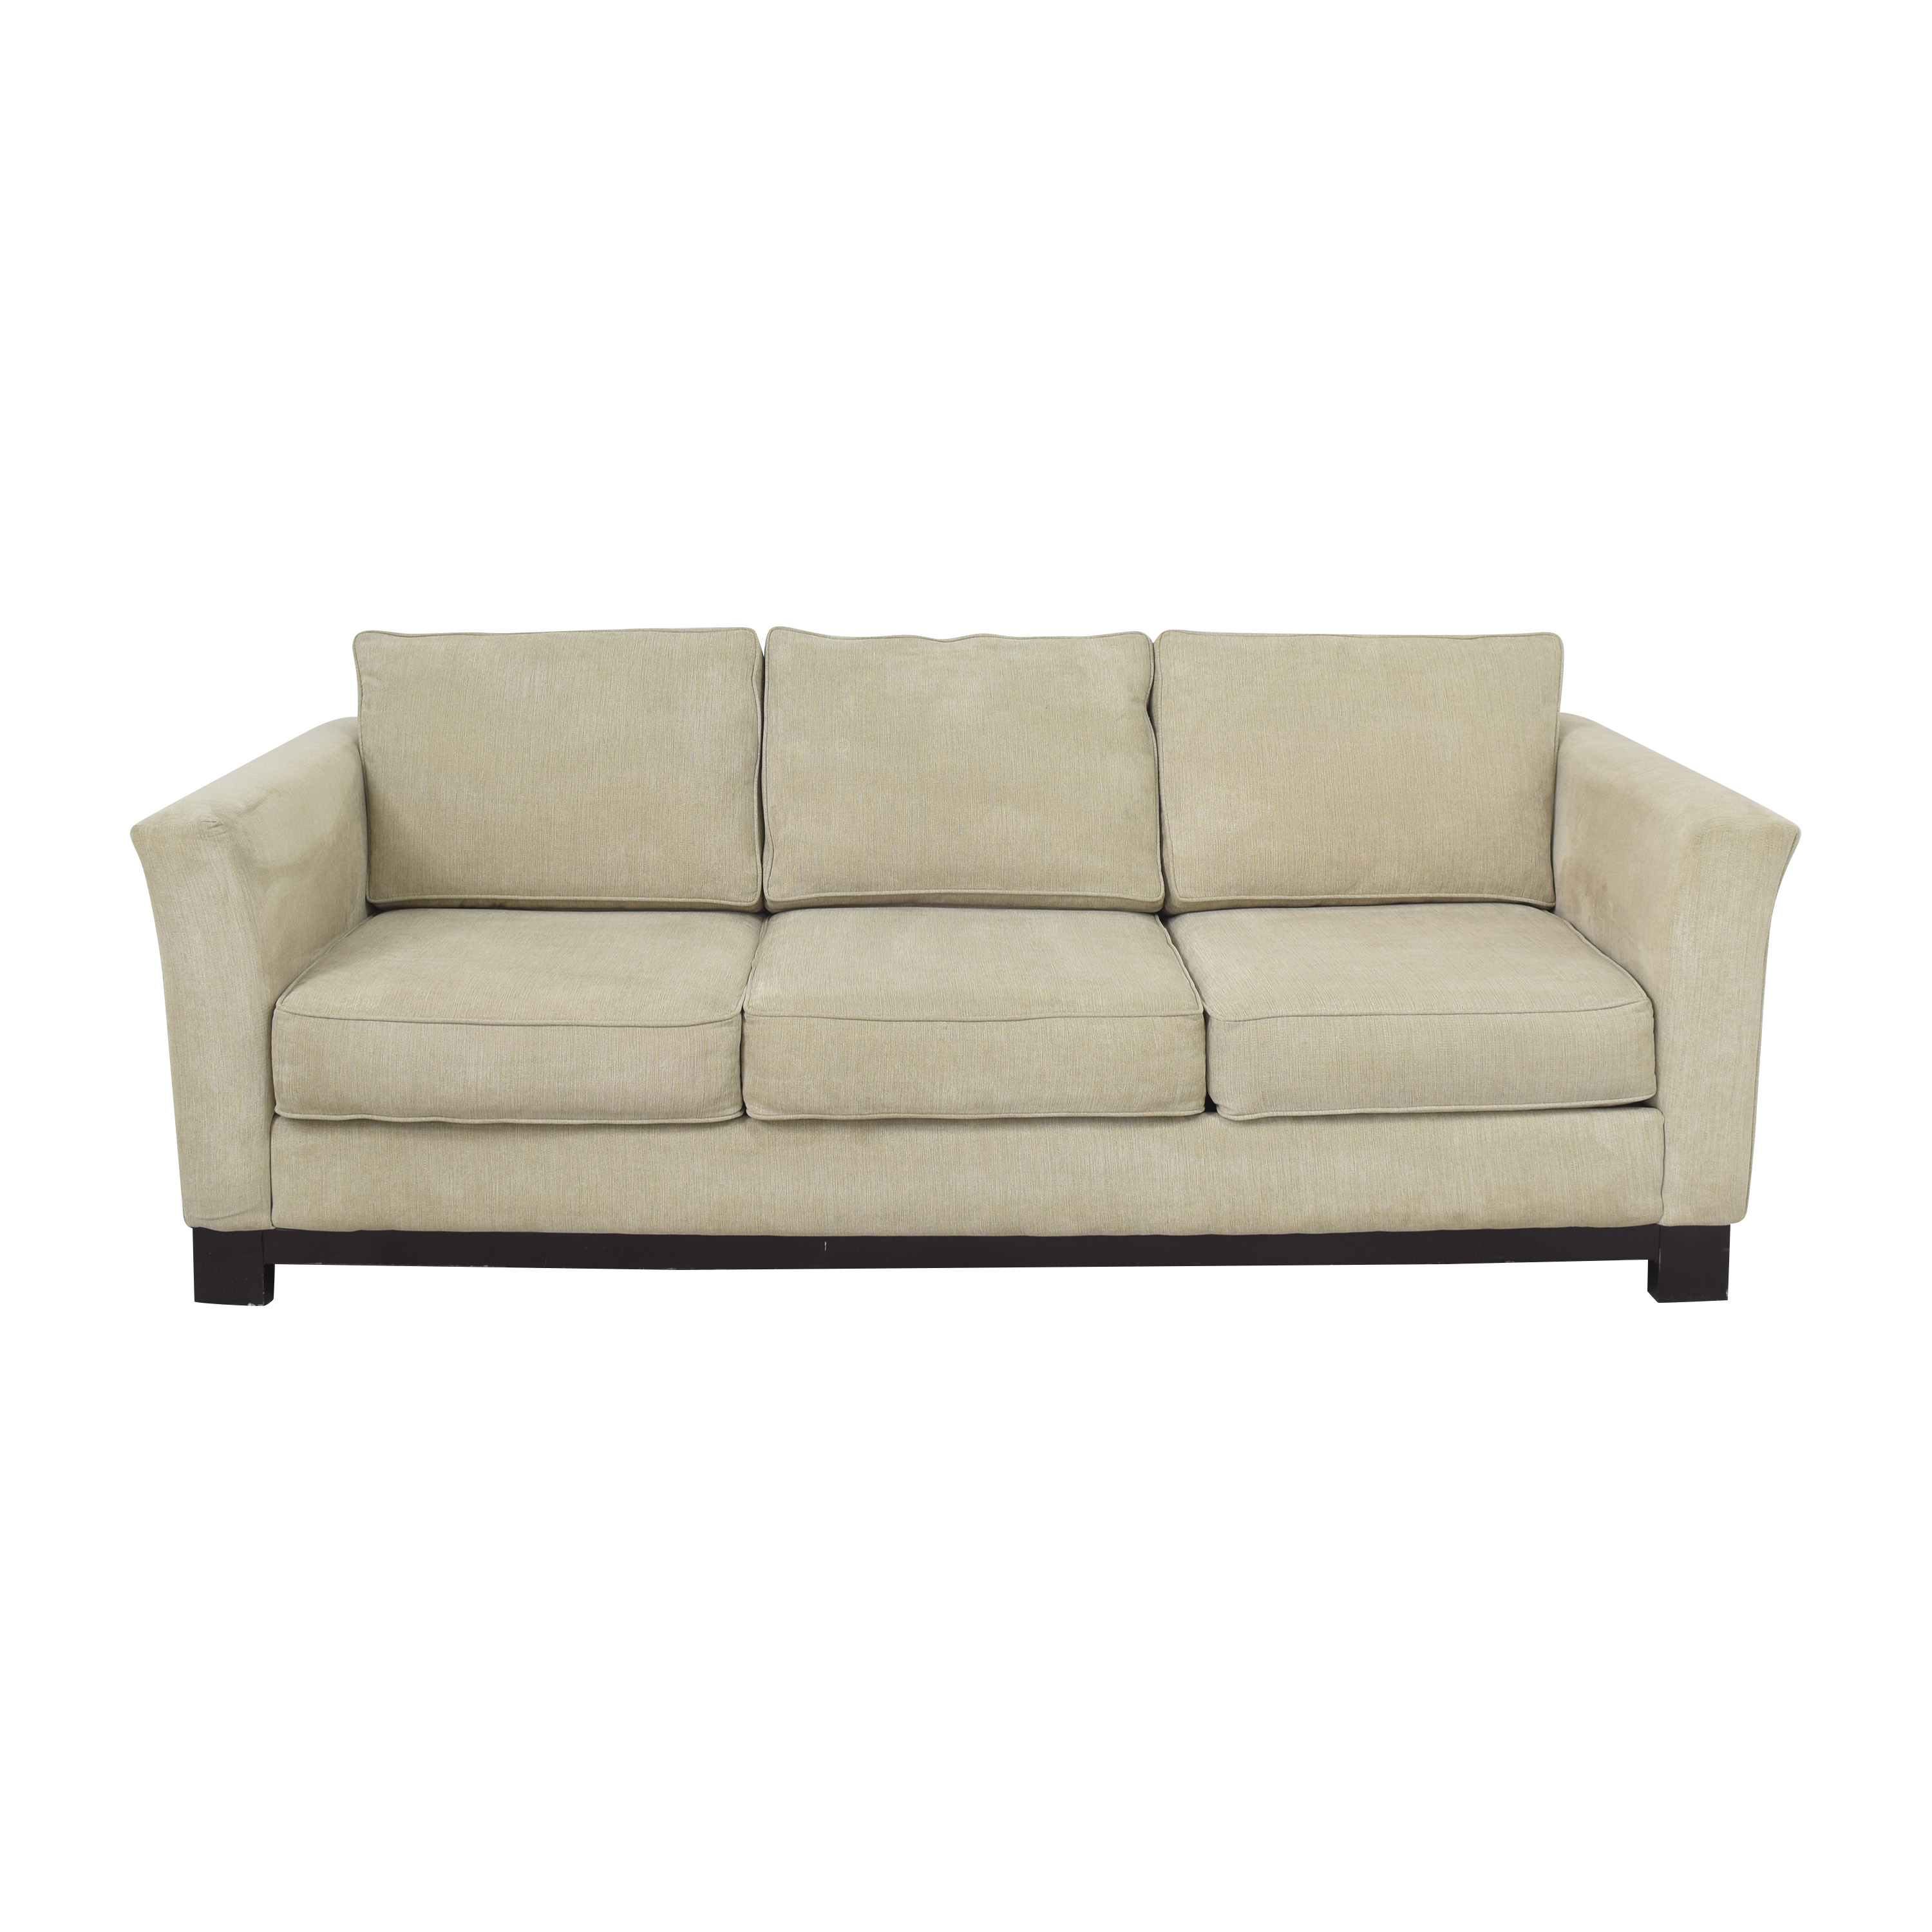 buy Havertys Havertys Three Cushion Sofa online